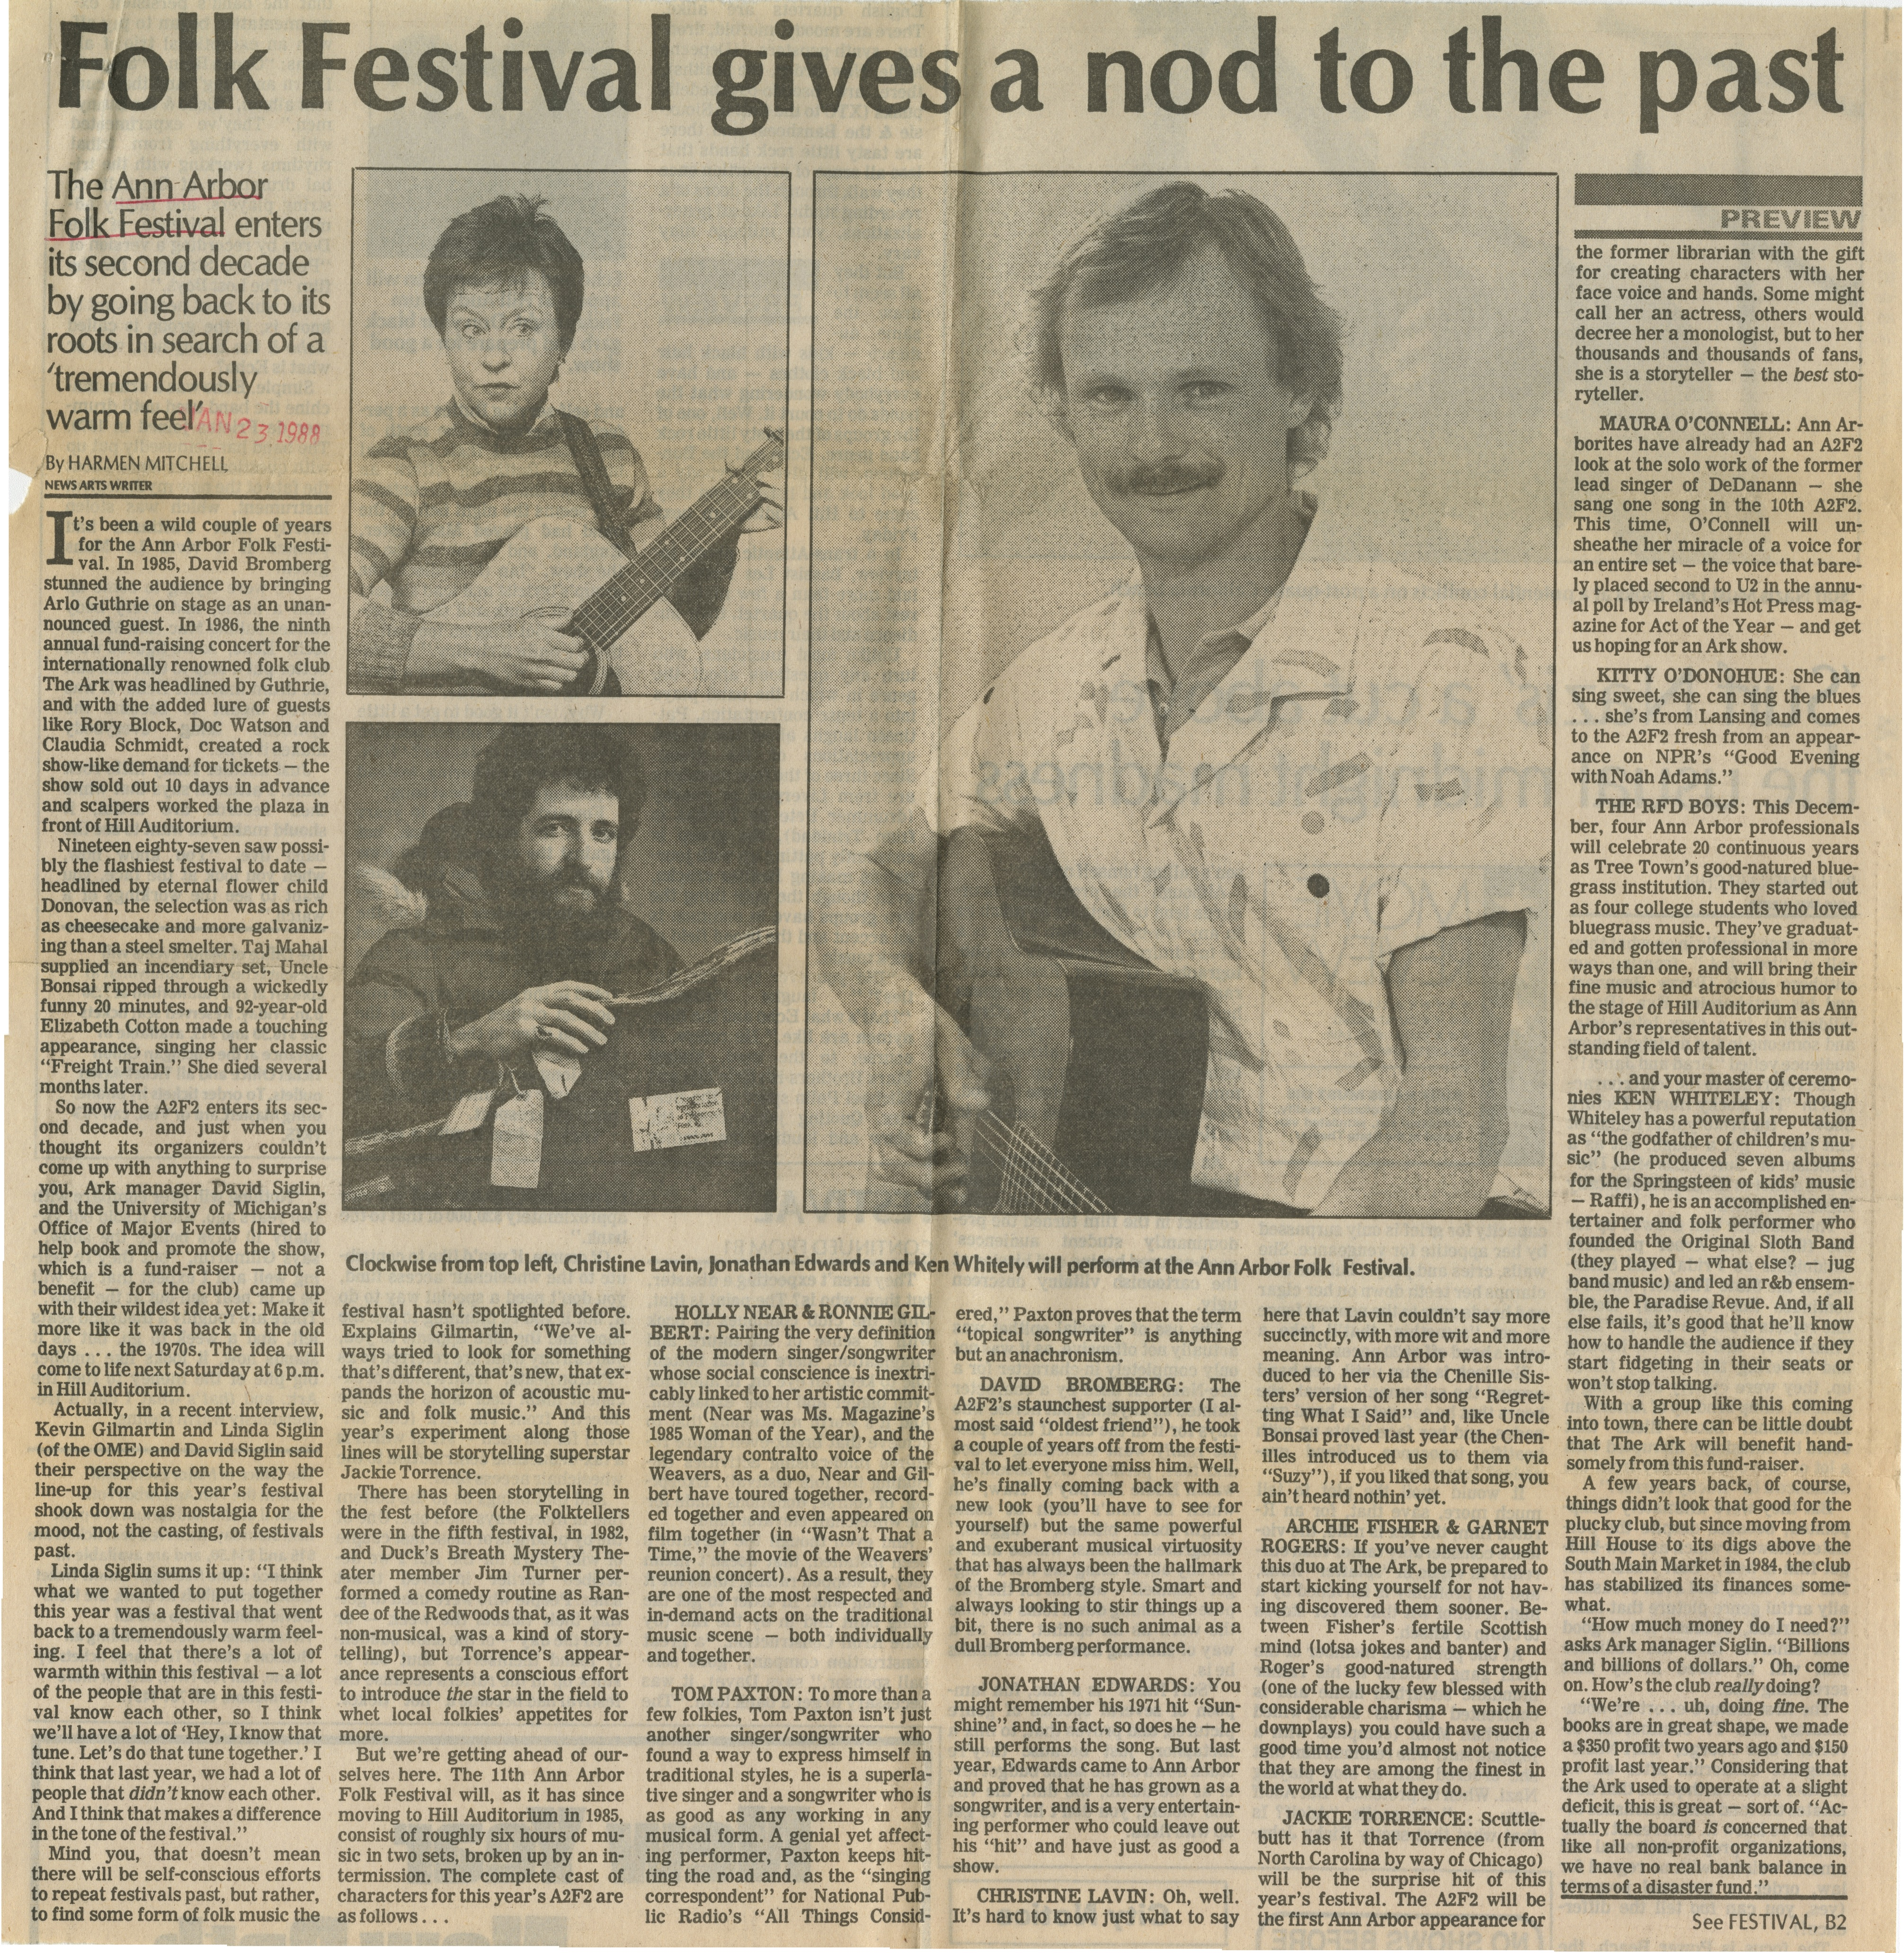 Folk Festival gives a nod to the past image